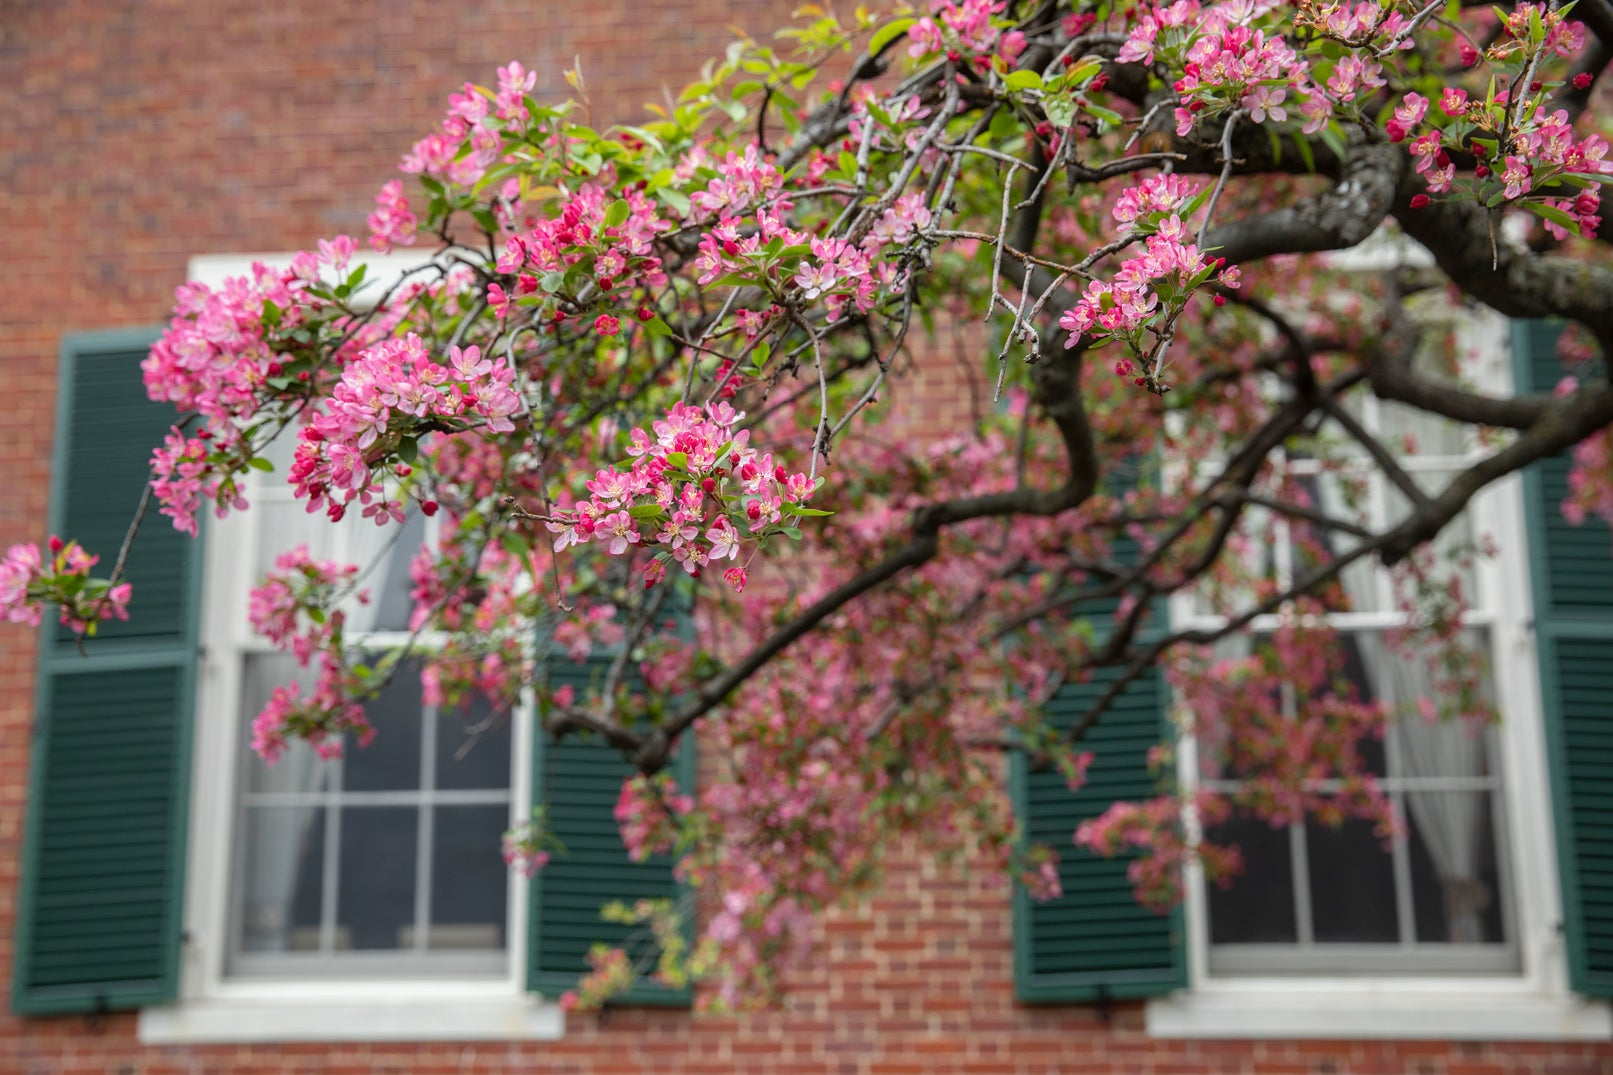 Pink flowering trees bloom outside a brick building with white trim and green shutters.